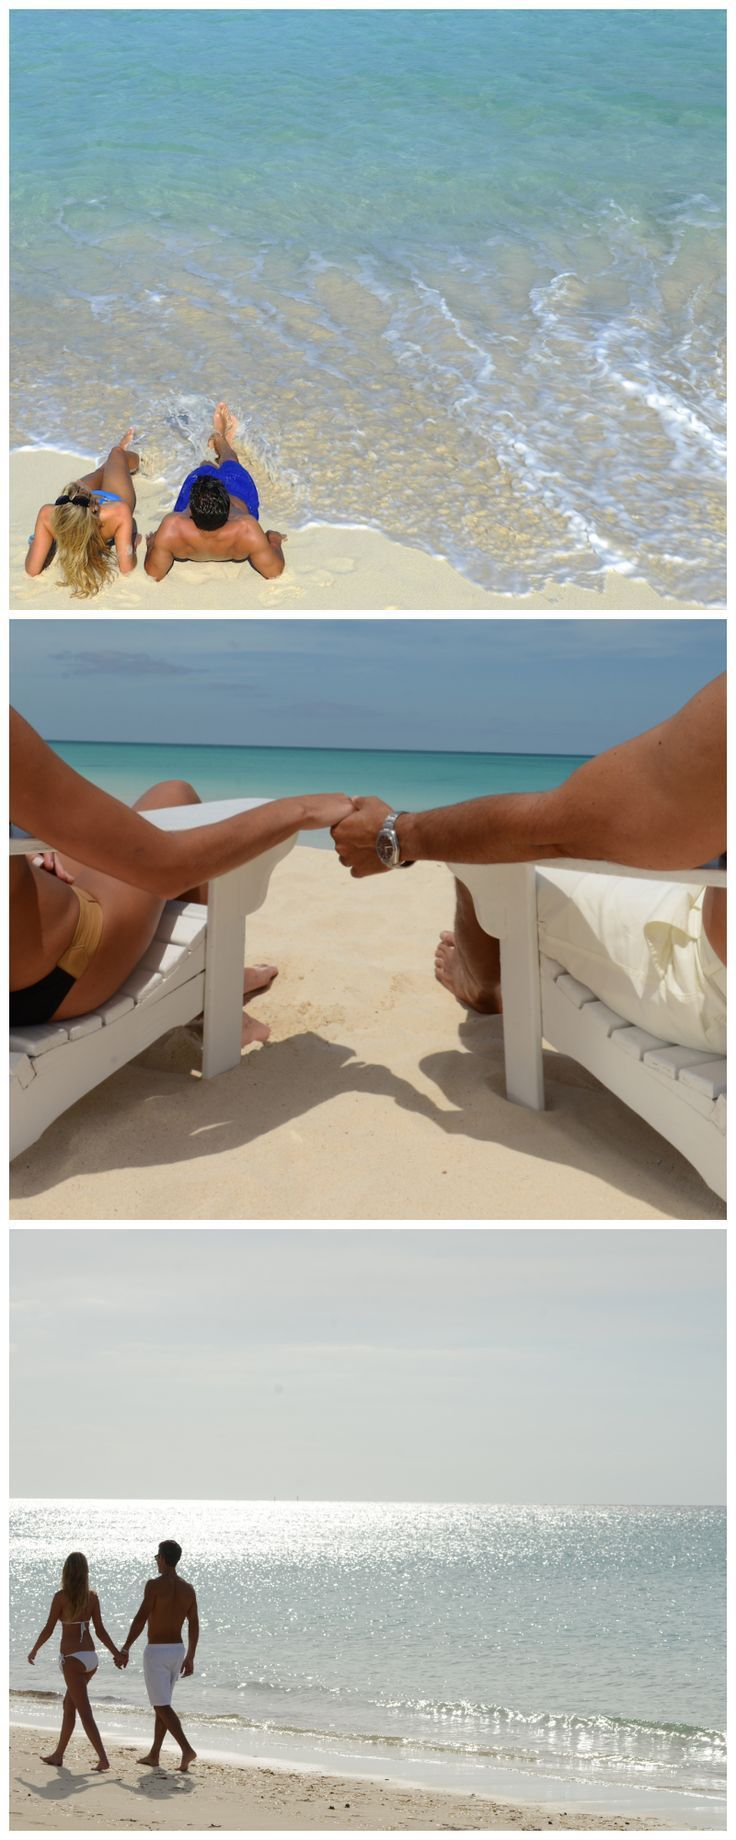 Romance is everywhere in The Bahamas! Plan a honeymoon, or a relaxing couples ge... - #Bahamas #couples #ge #Honeymoon #plan #relaxing #Romance #beachpicturesbahamas